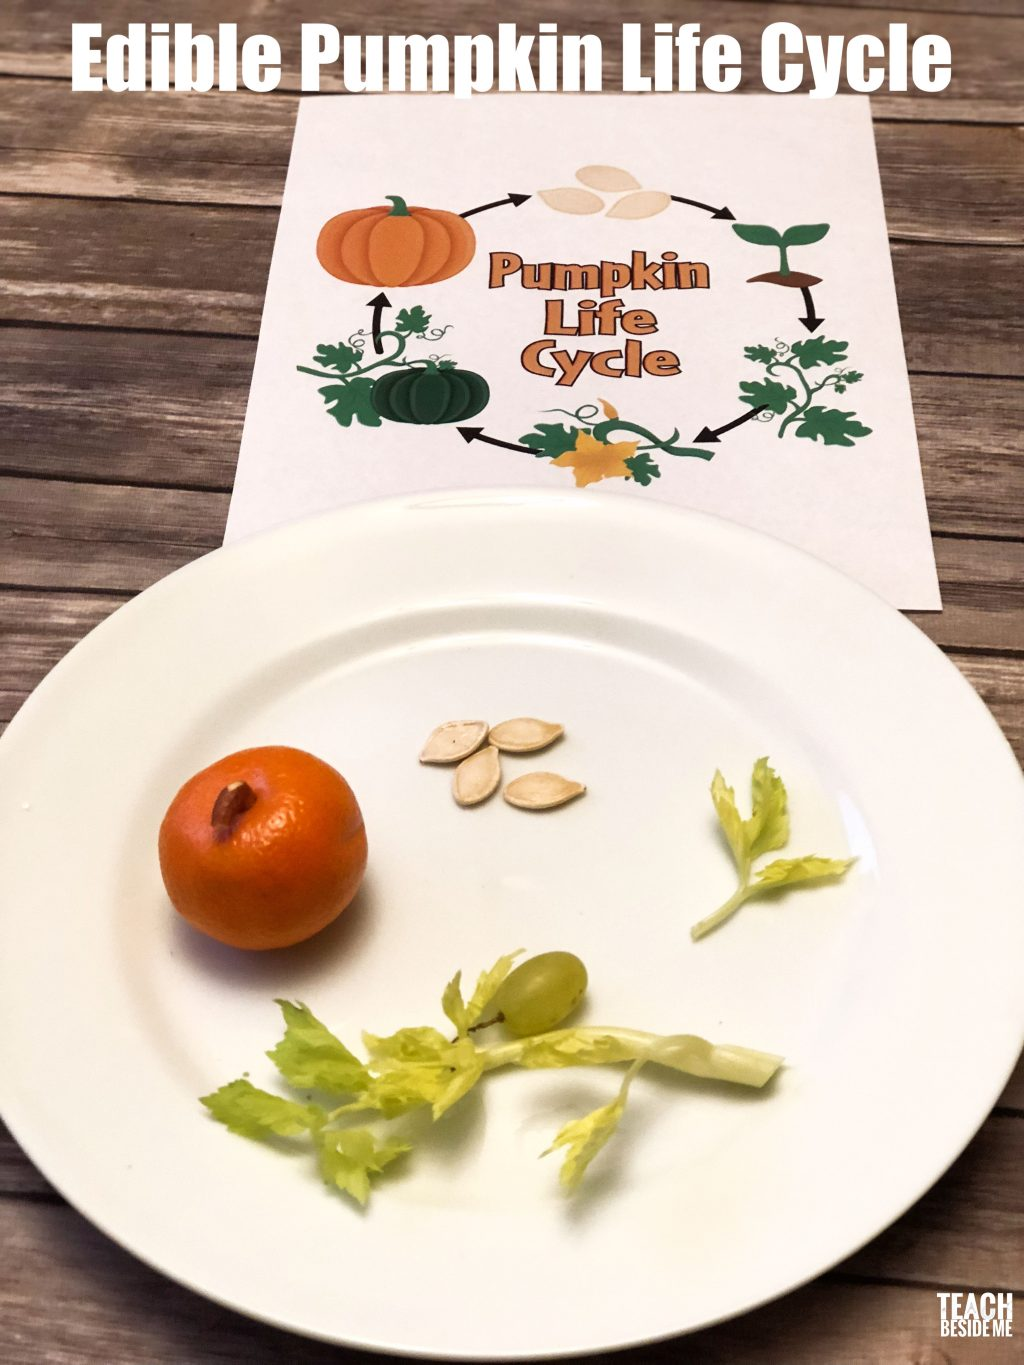 Edible Pumpkin Life Cycle